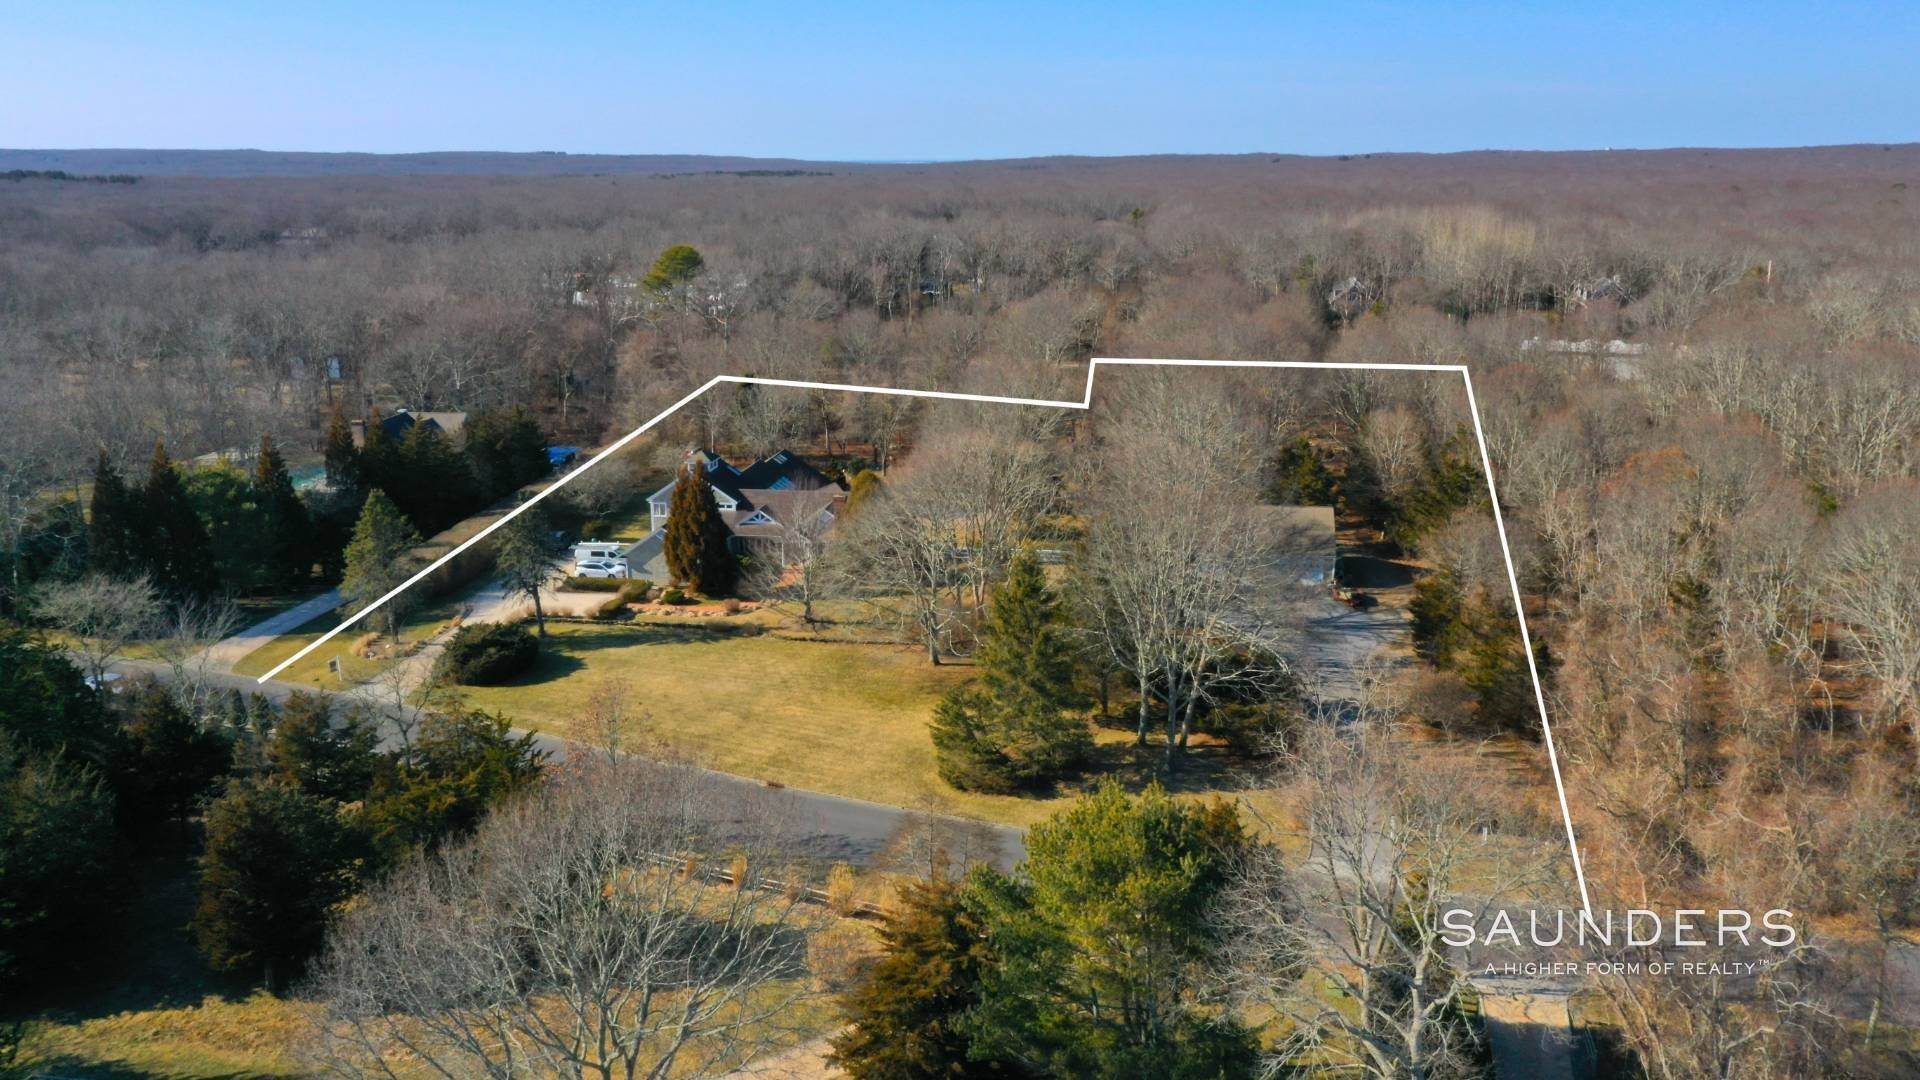 Single Family Homes for Sale at 2.8 Acres In Sagaponack Village W/ Barn & Room For Tennis 44 Greenleaf Lane, Sagaponack Village, Southampton Town, NY 11962